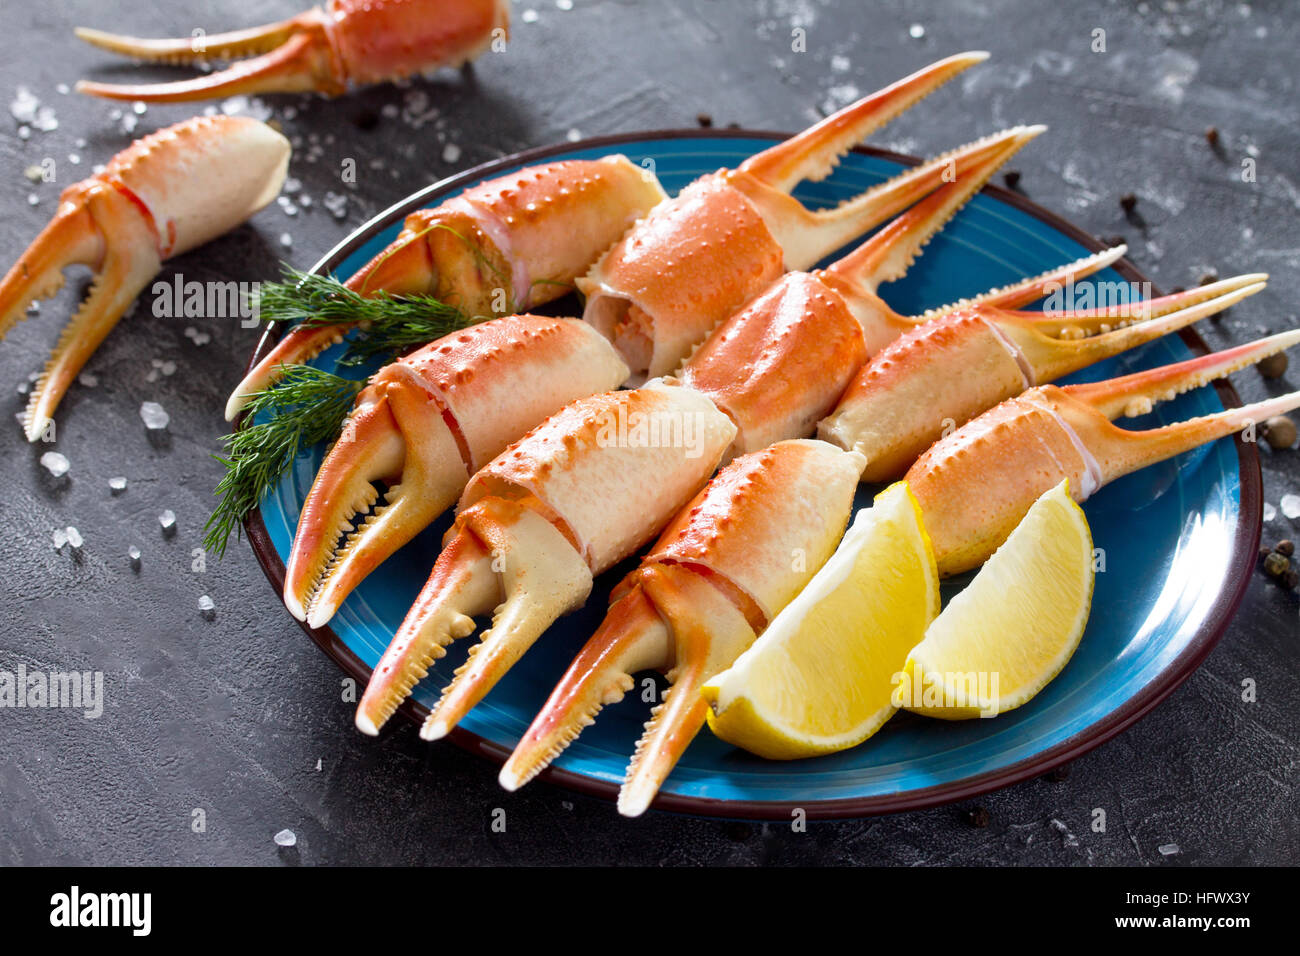 Cooked crab claws with lemon, sea salt and pepper on a concrete background. - Stock Image